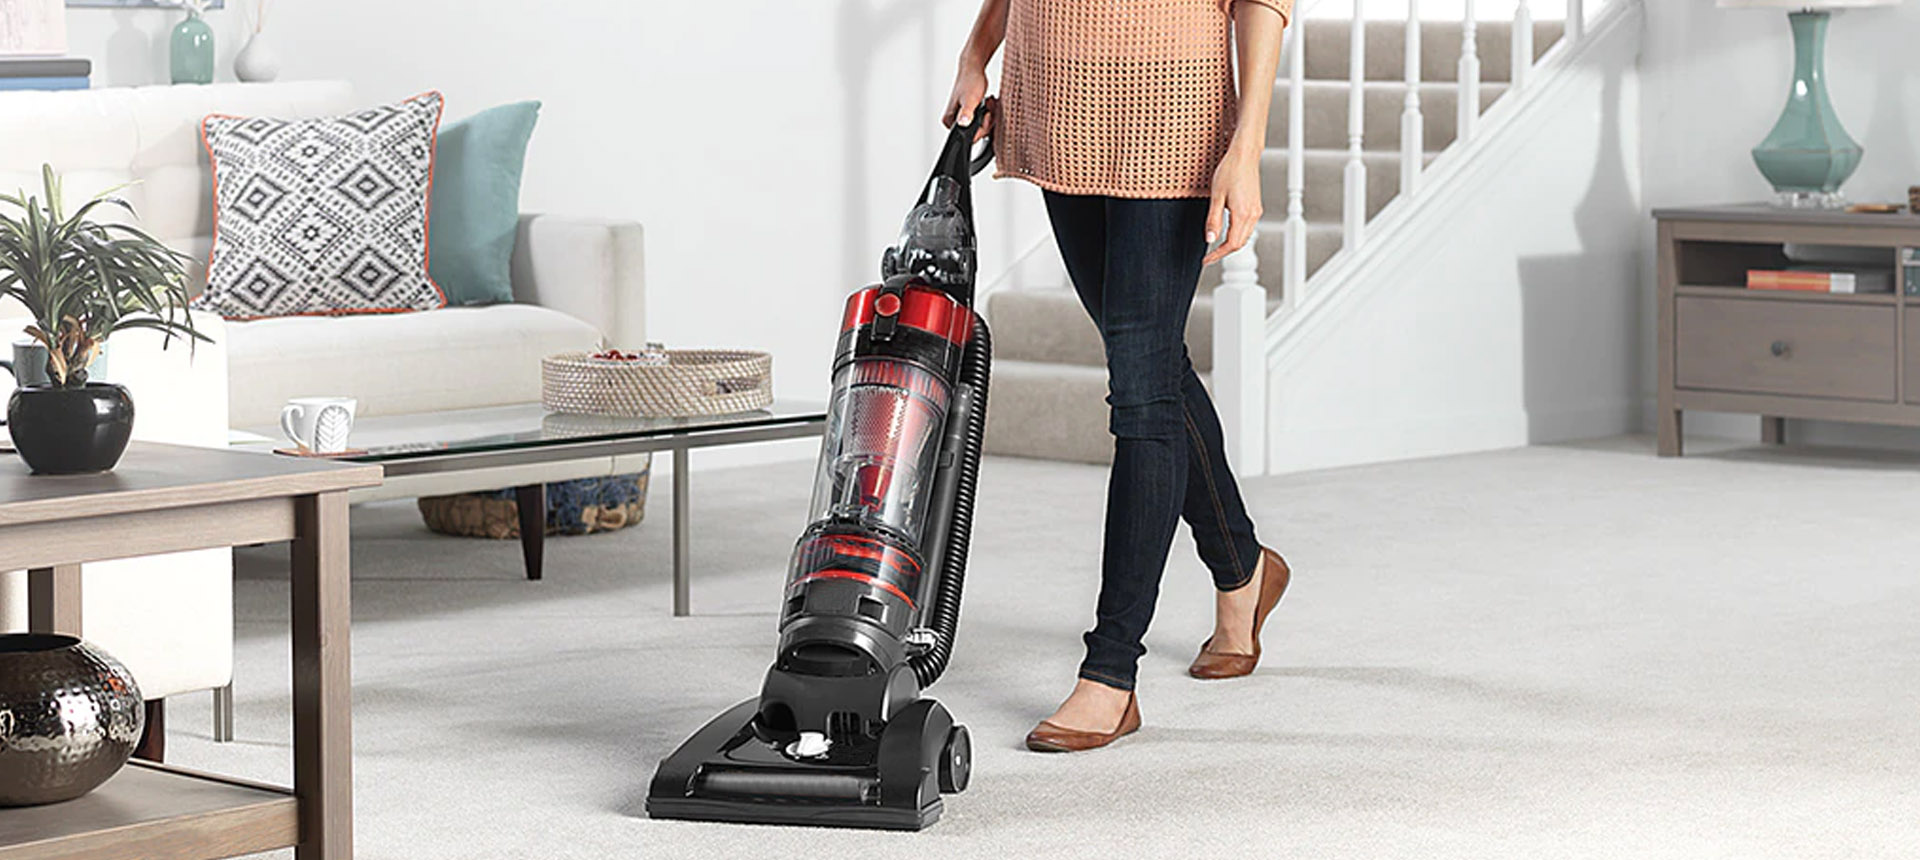 Use Vacuum Cleaners Properly-2